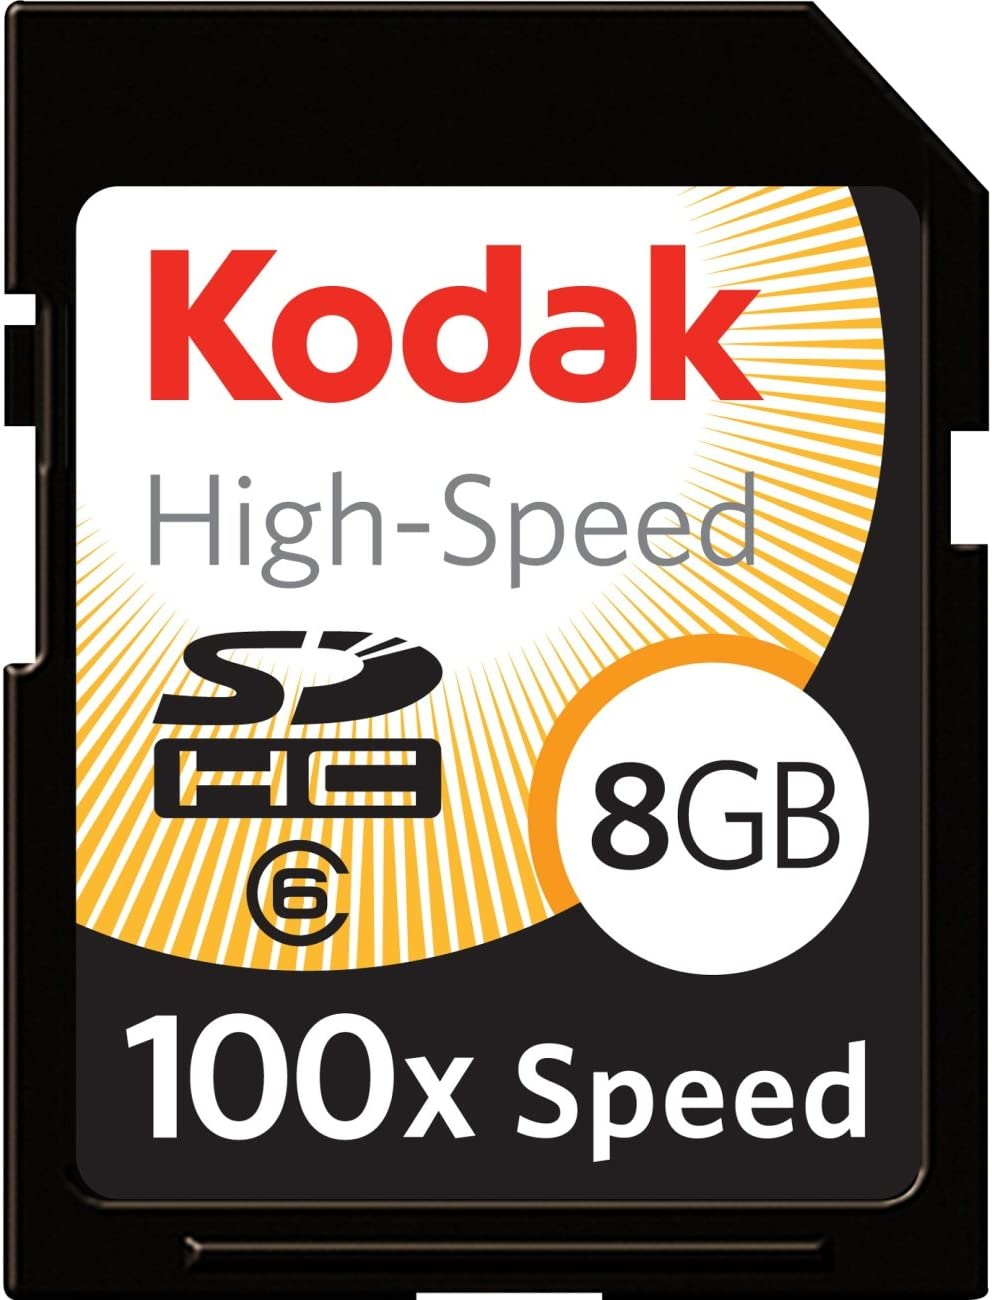 Kodak 8GB SDHC High-Speed Card